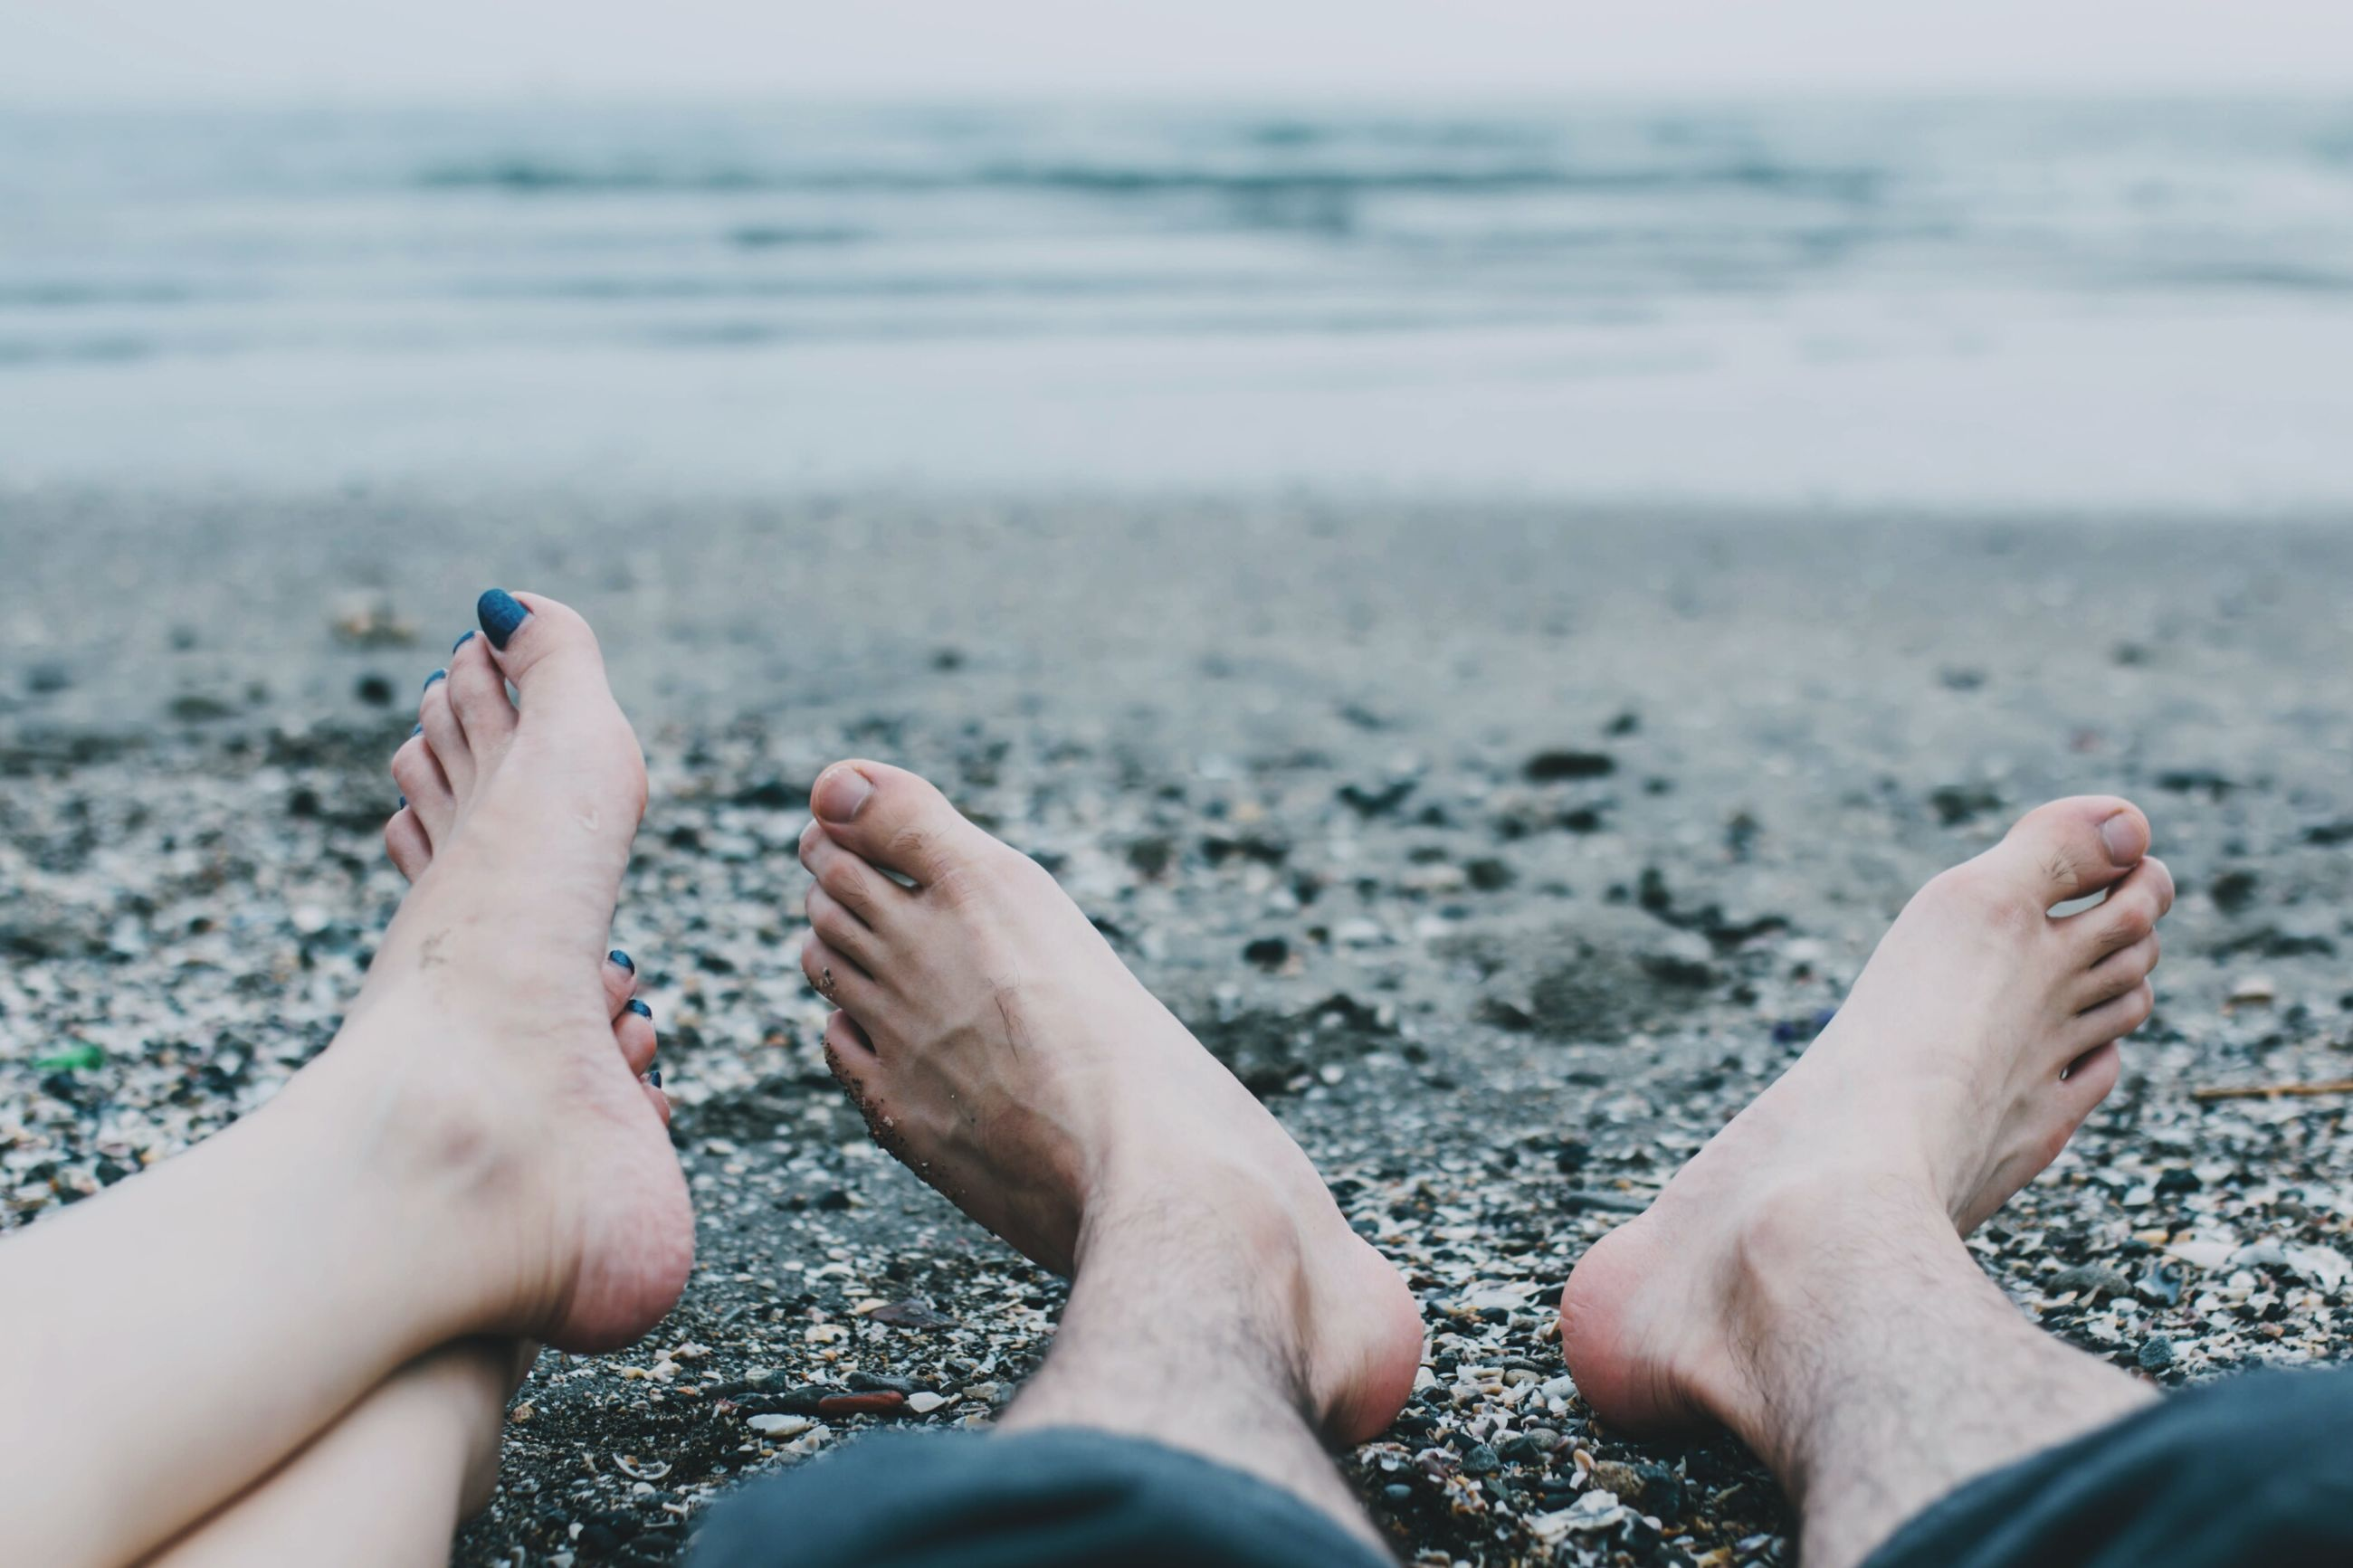 beach, sand, nail polish, barefoot, lifestyles, sea, low section, outdoors, women, real people, day, leisure activity, water, human body part, one person, close-up, people, toenail, adult, nature, pink nail polish, adults only